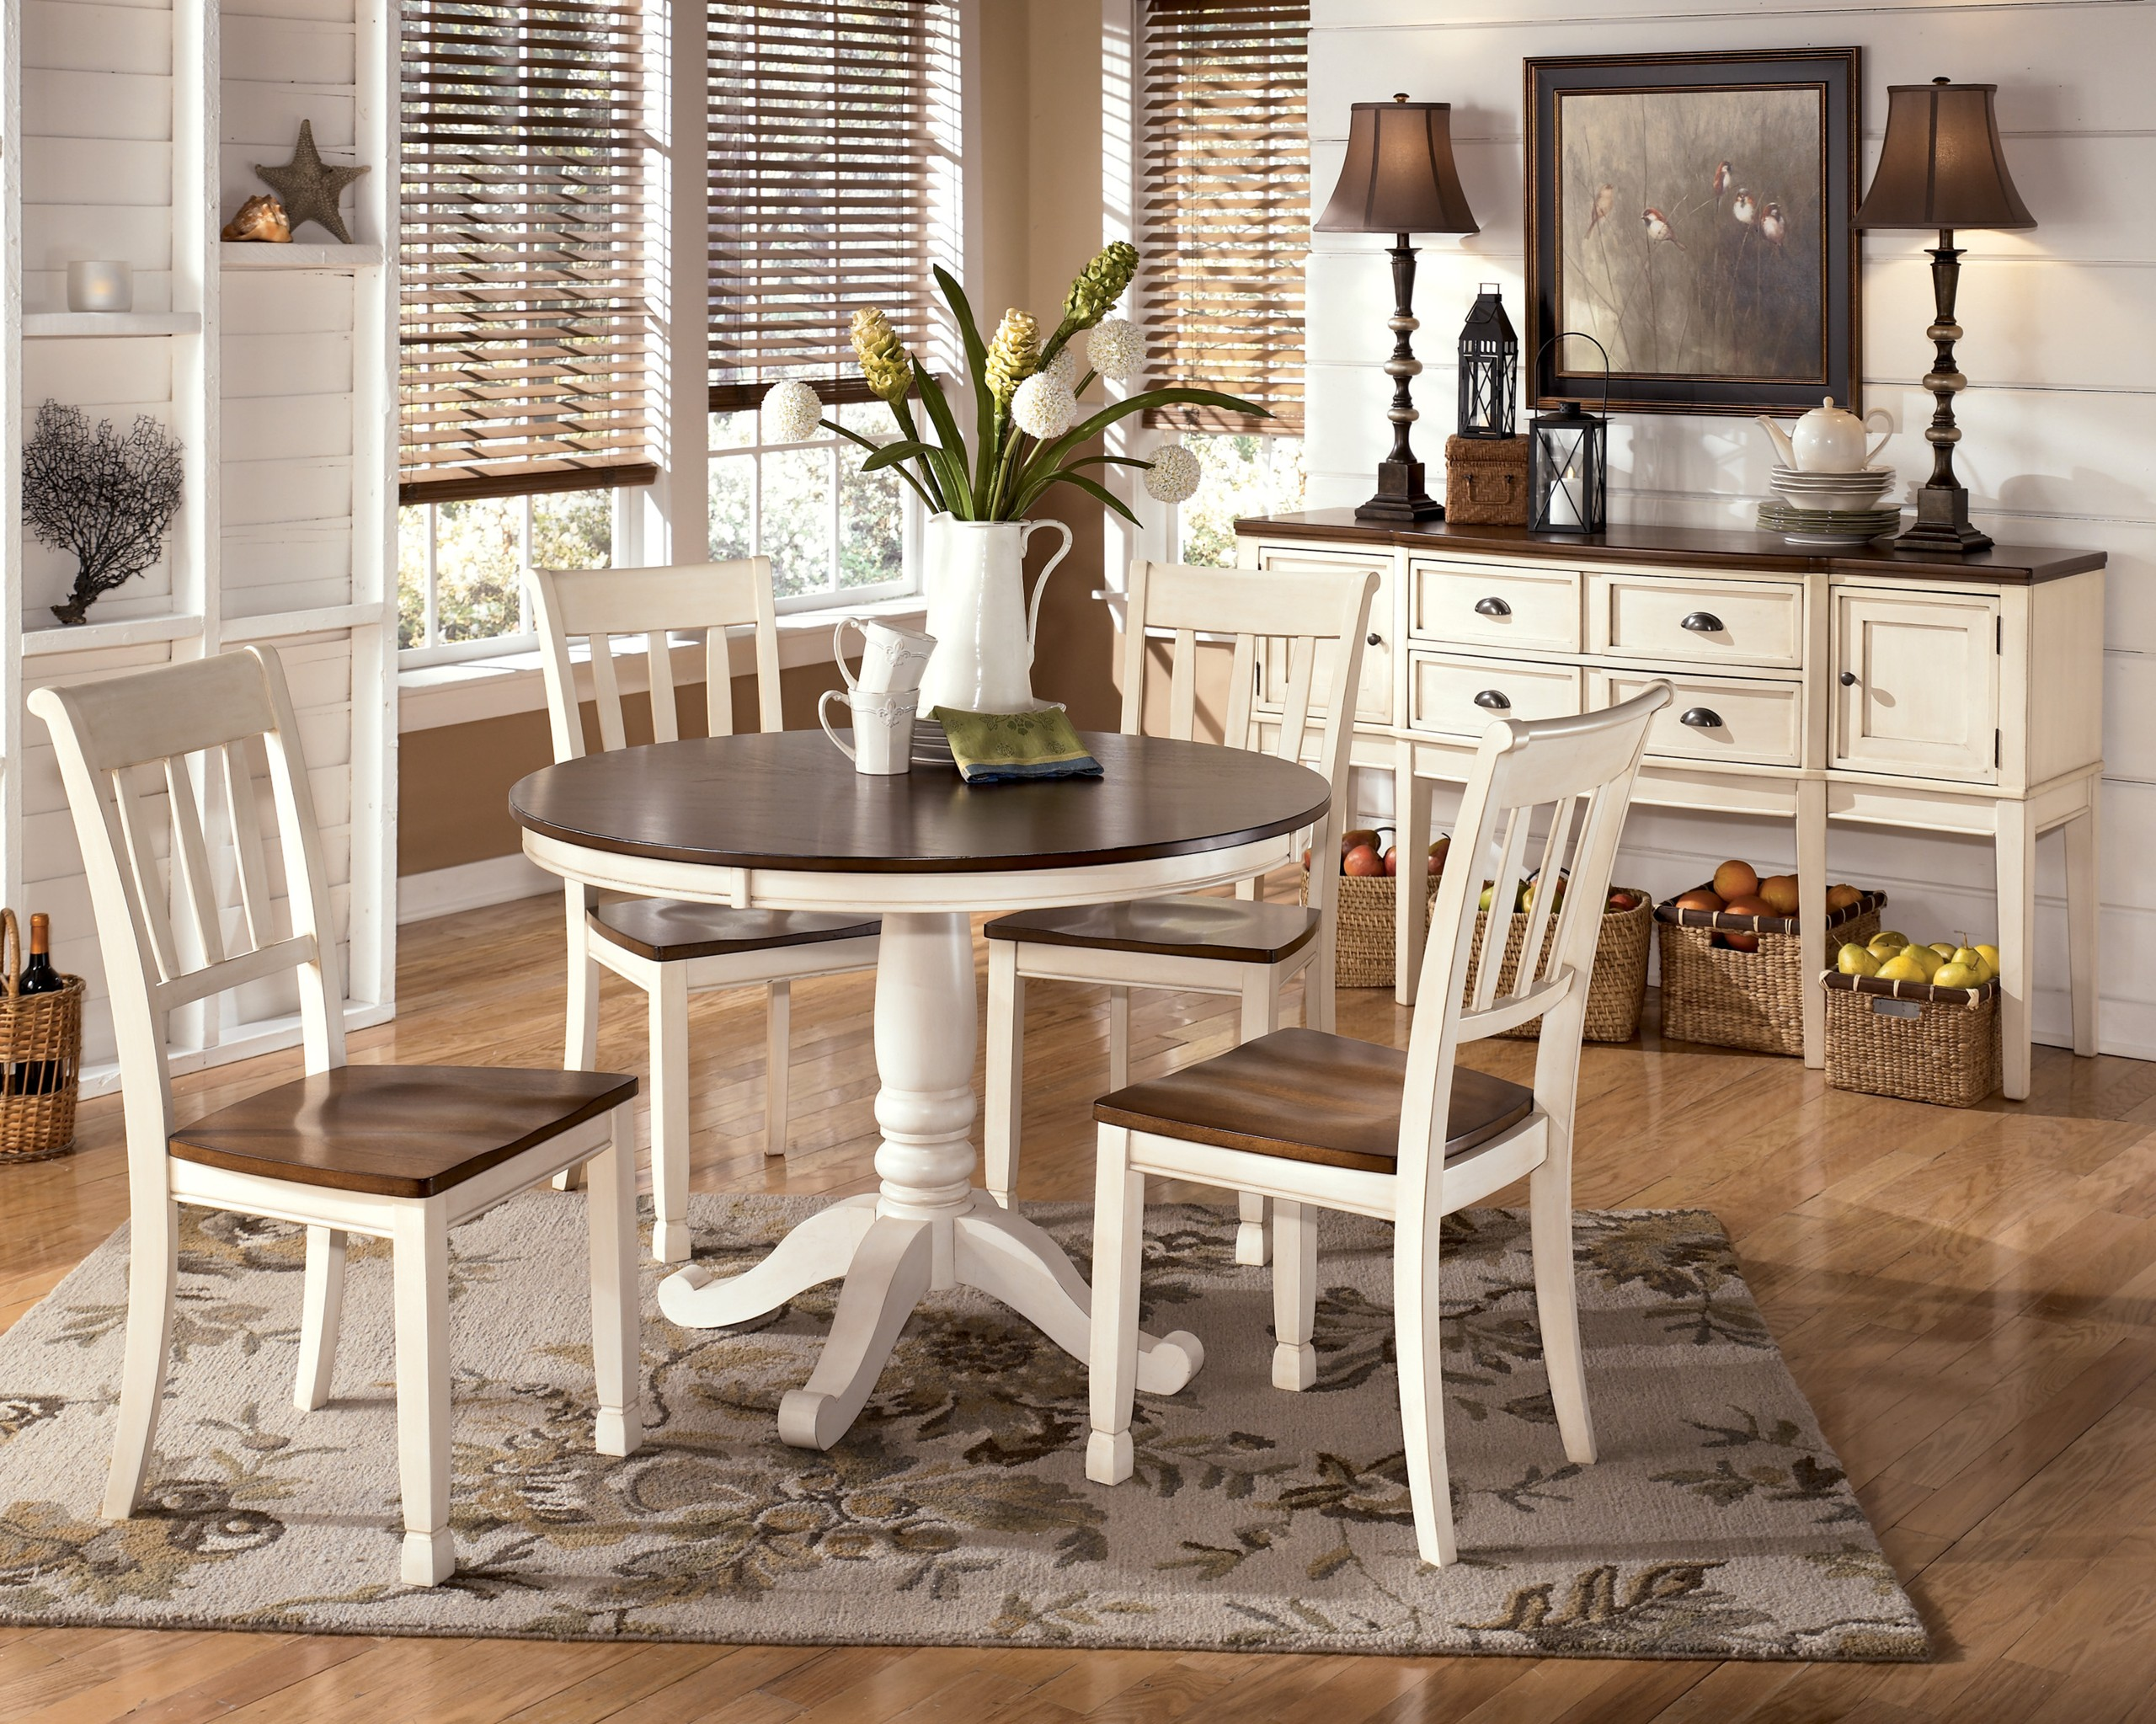 Simple Dining Set Wooden Round Dining Room Table Sets Small